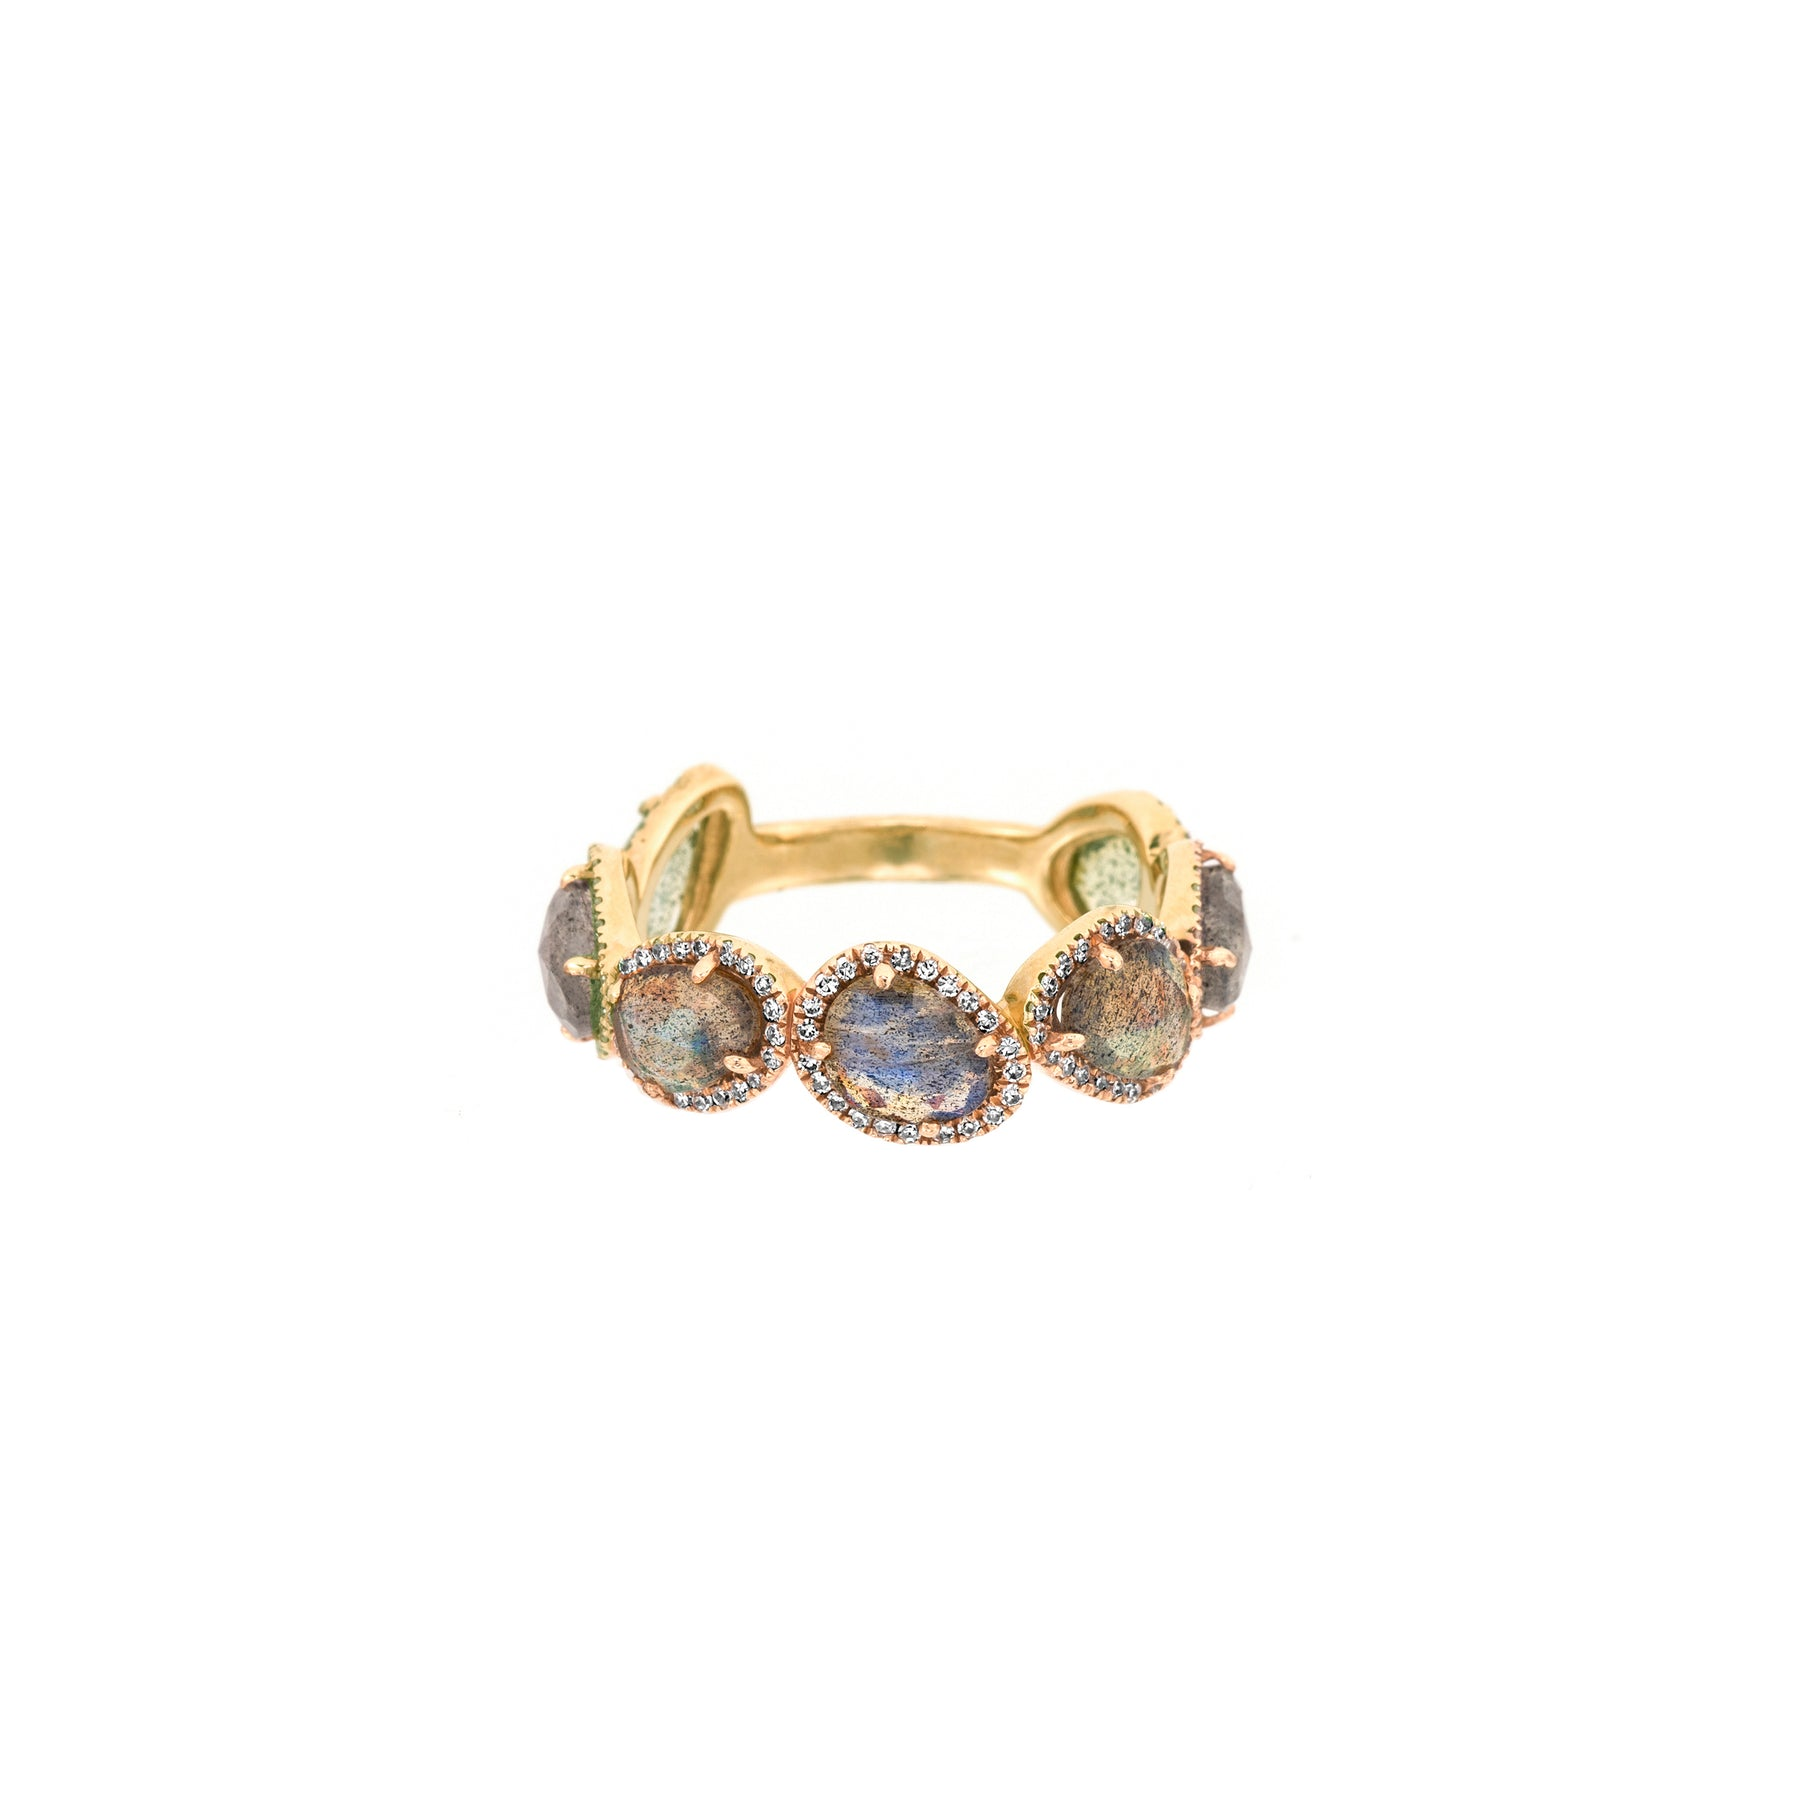 7 Organic Shape Labradorite Diamond Band Ring